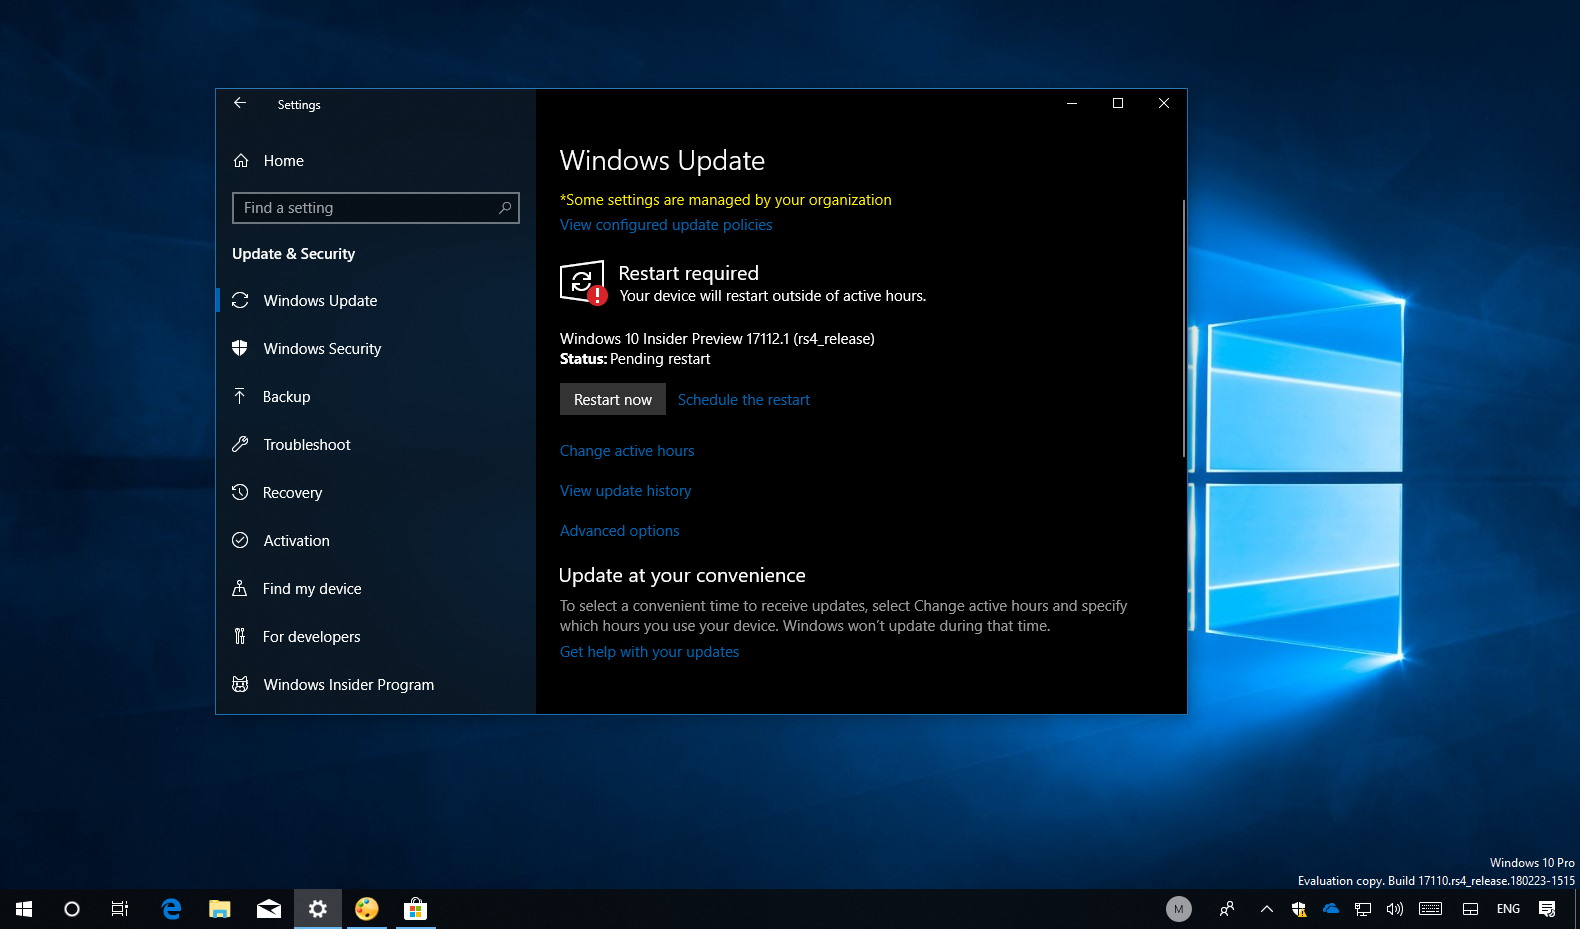 Windows 10 build 17112